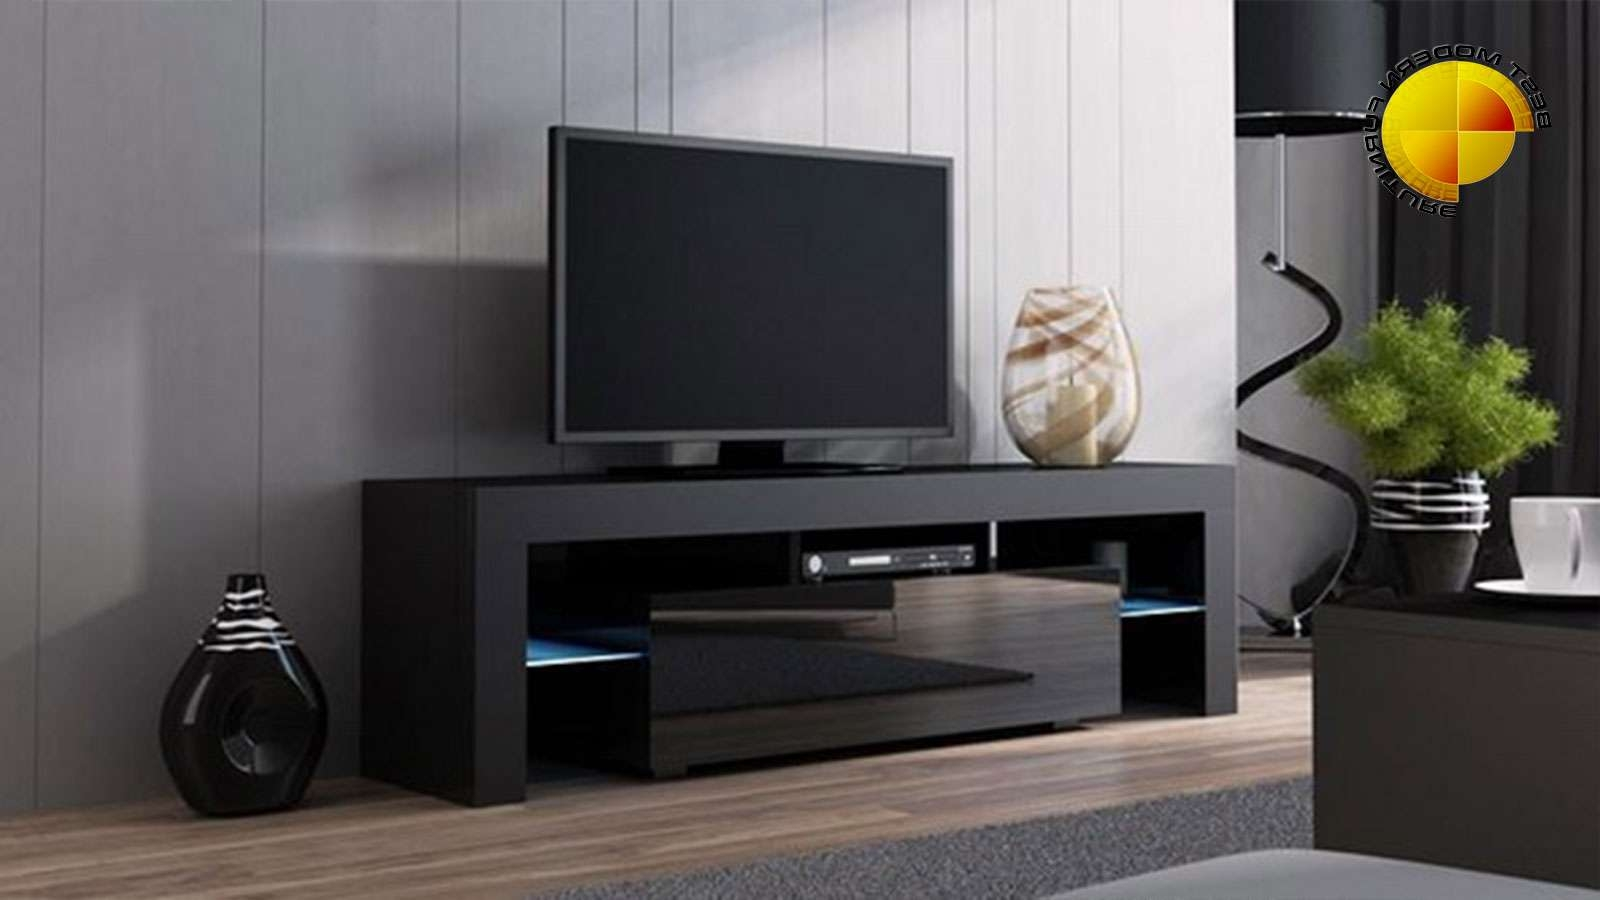 Modern Tv Stand 160cm High Gloss Cabinet Rgb Led Lights Black Unit Pertaining To Tv Stands With Led Lights (View 3 of 15)